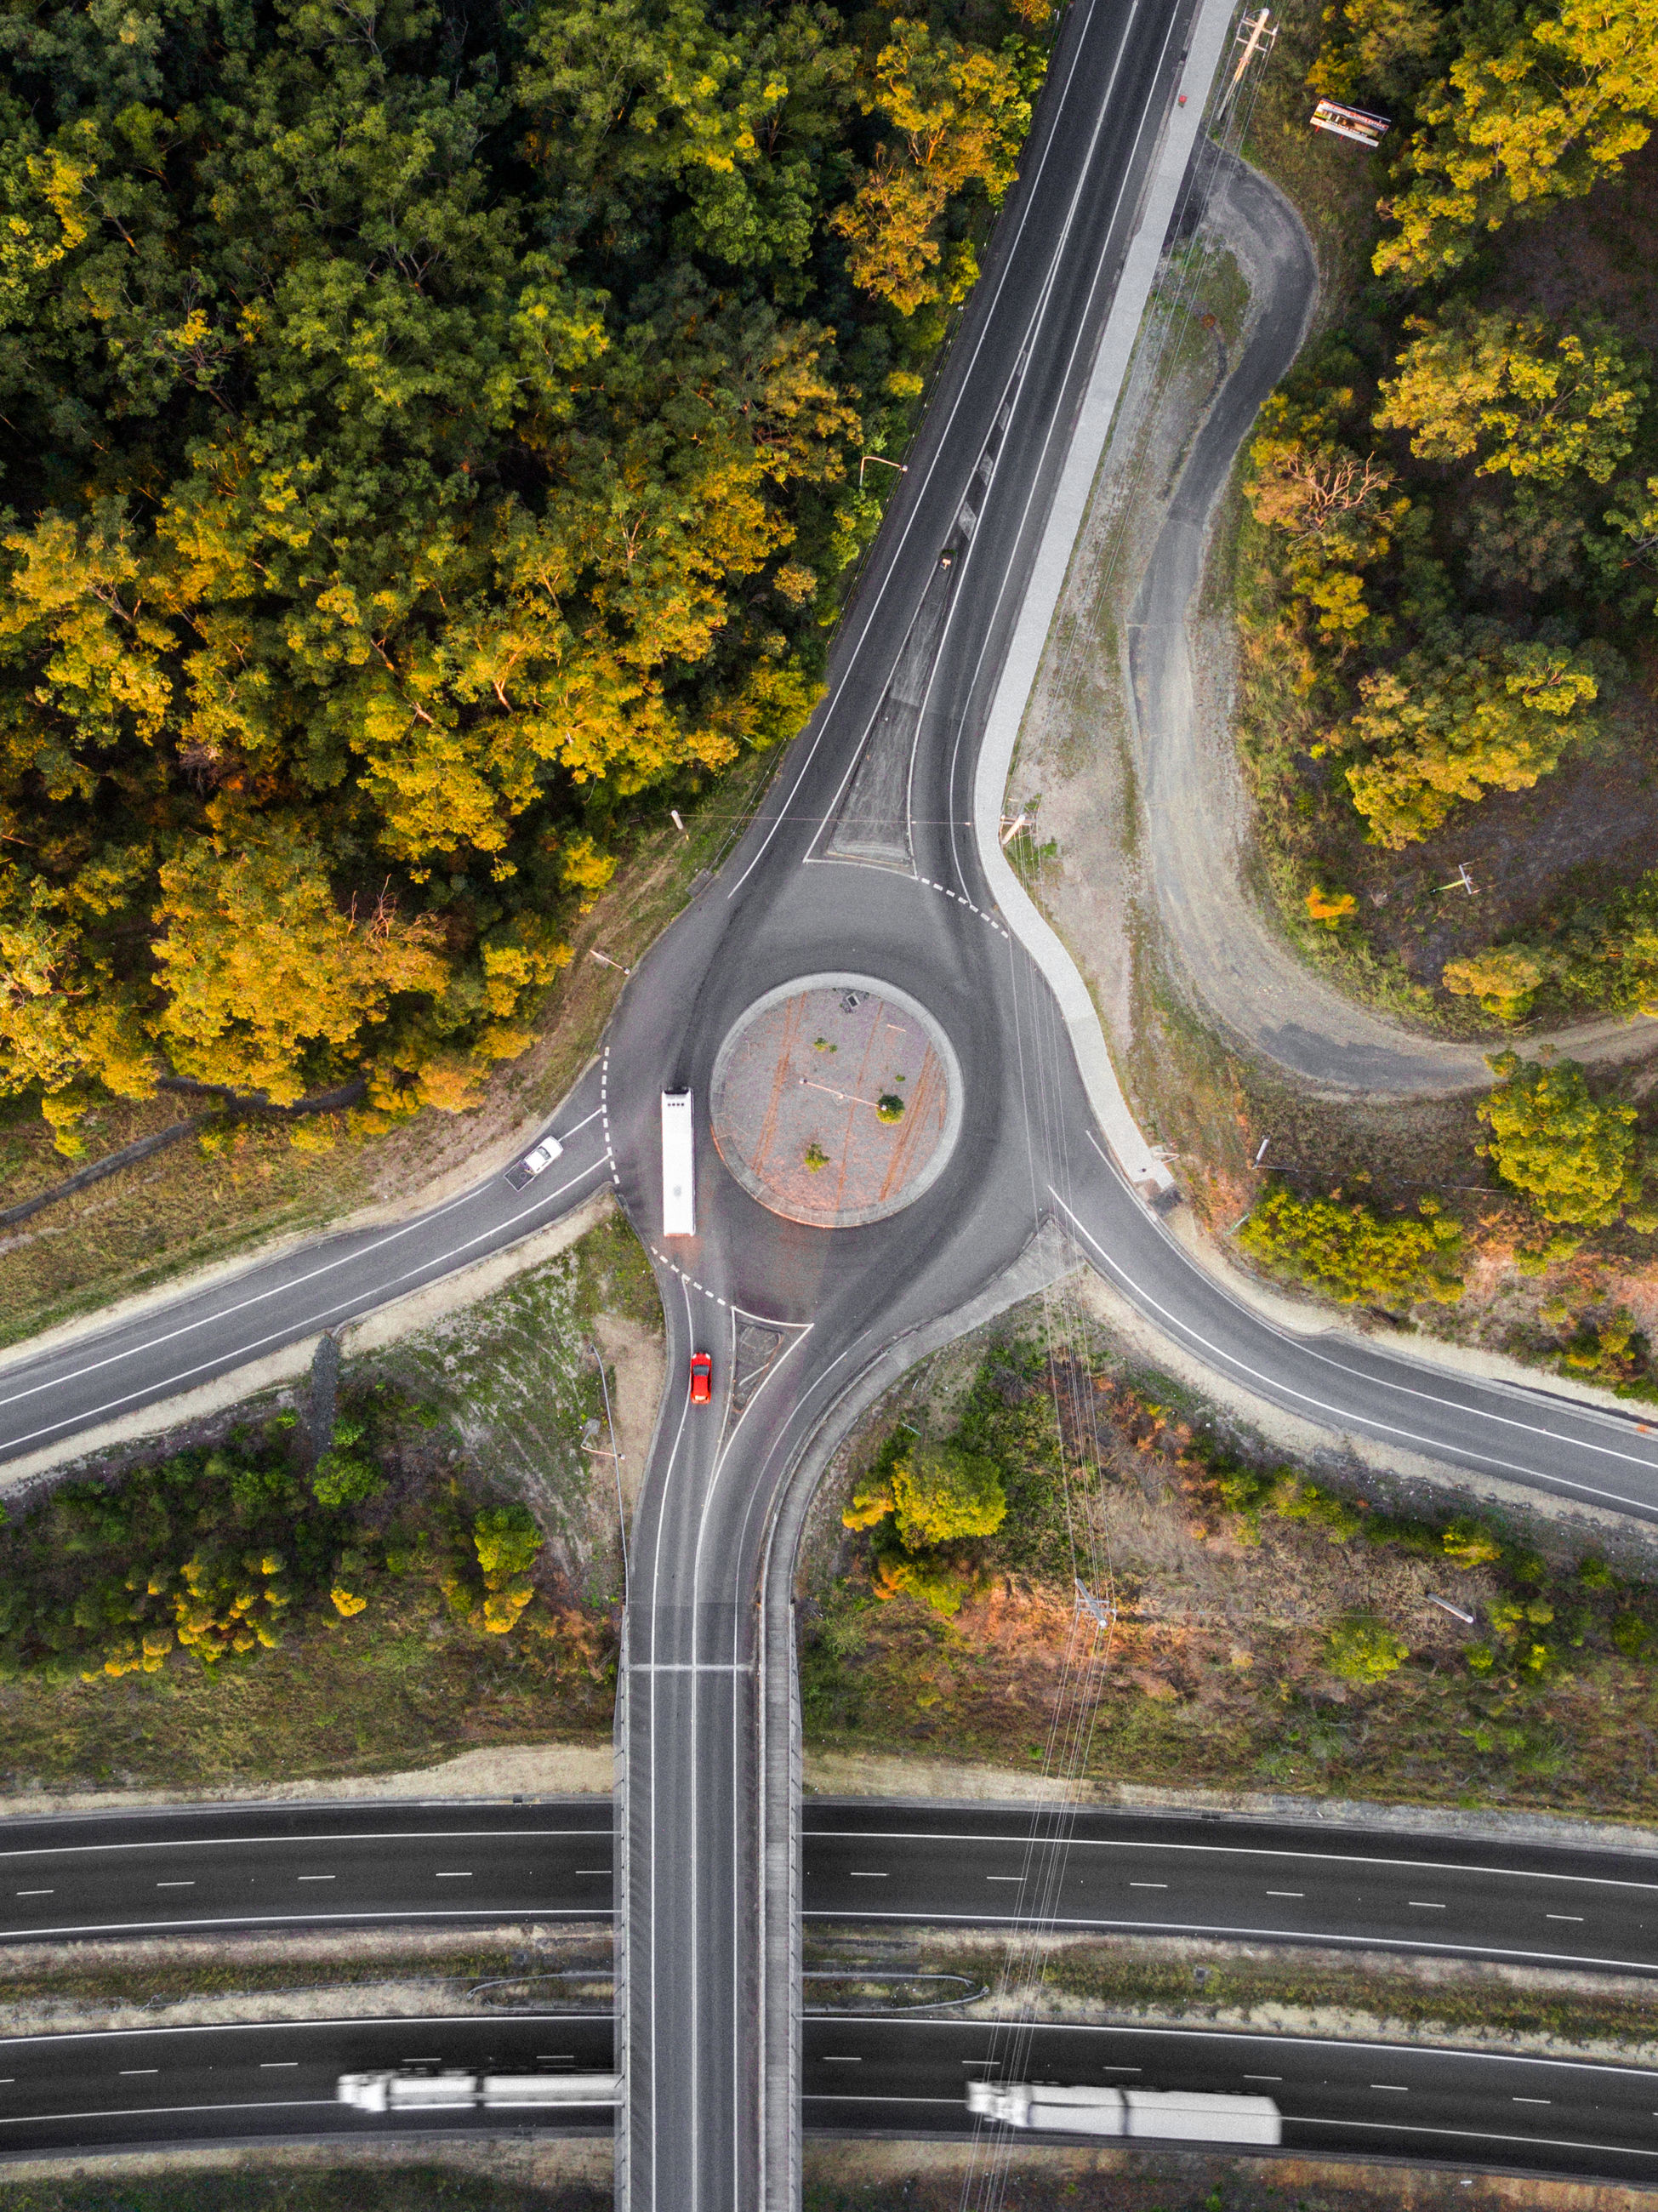 transportation, road, tree, plant, no people, nature, highway, day, motion, autumn, bridge, architecture, curve, connection, outdoors, bridge - man made structure, multiple lane highway, city, mode of transportation, motor vehicle, change